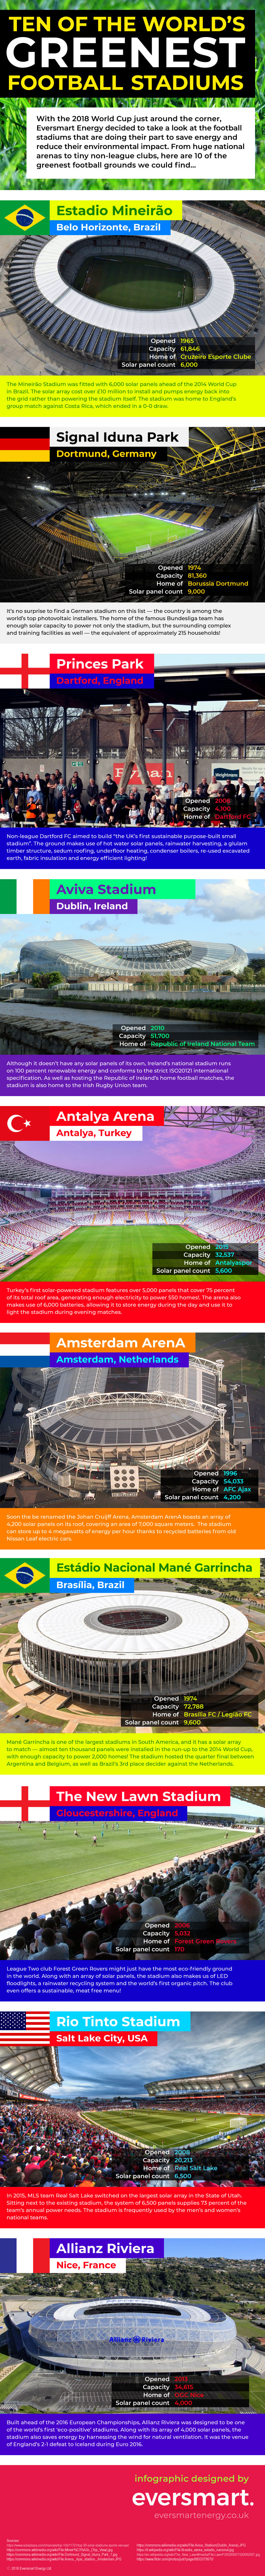 green stadiums infographic